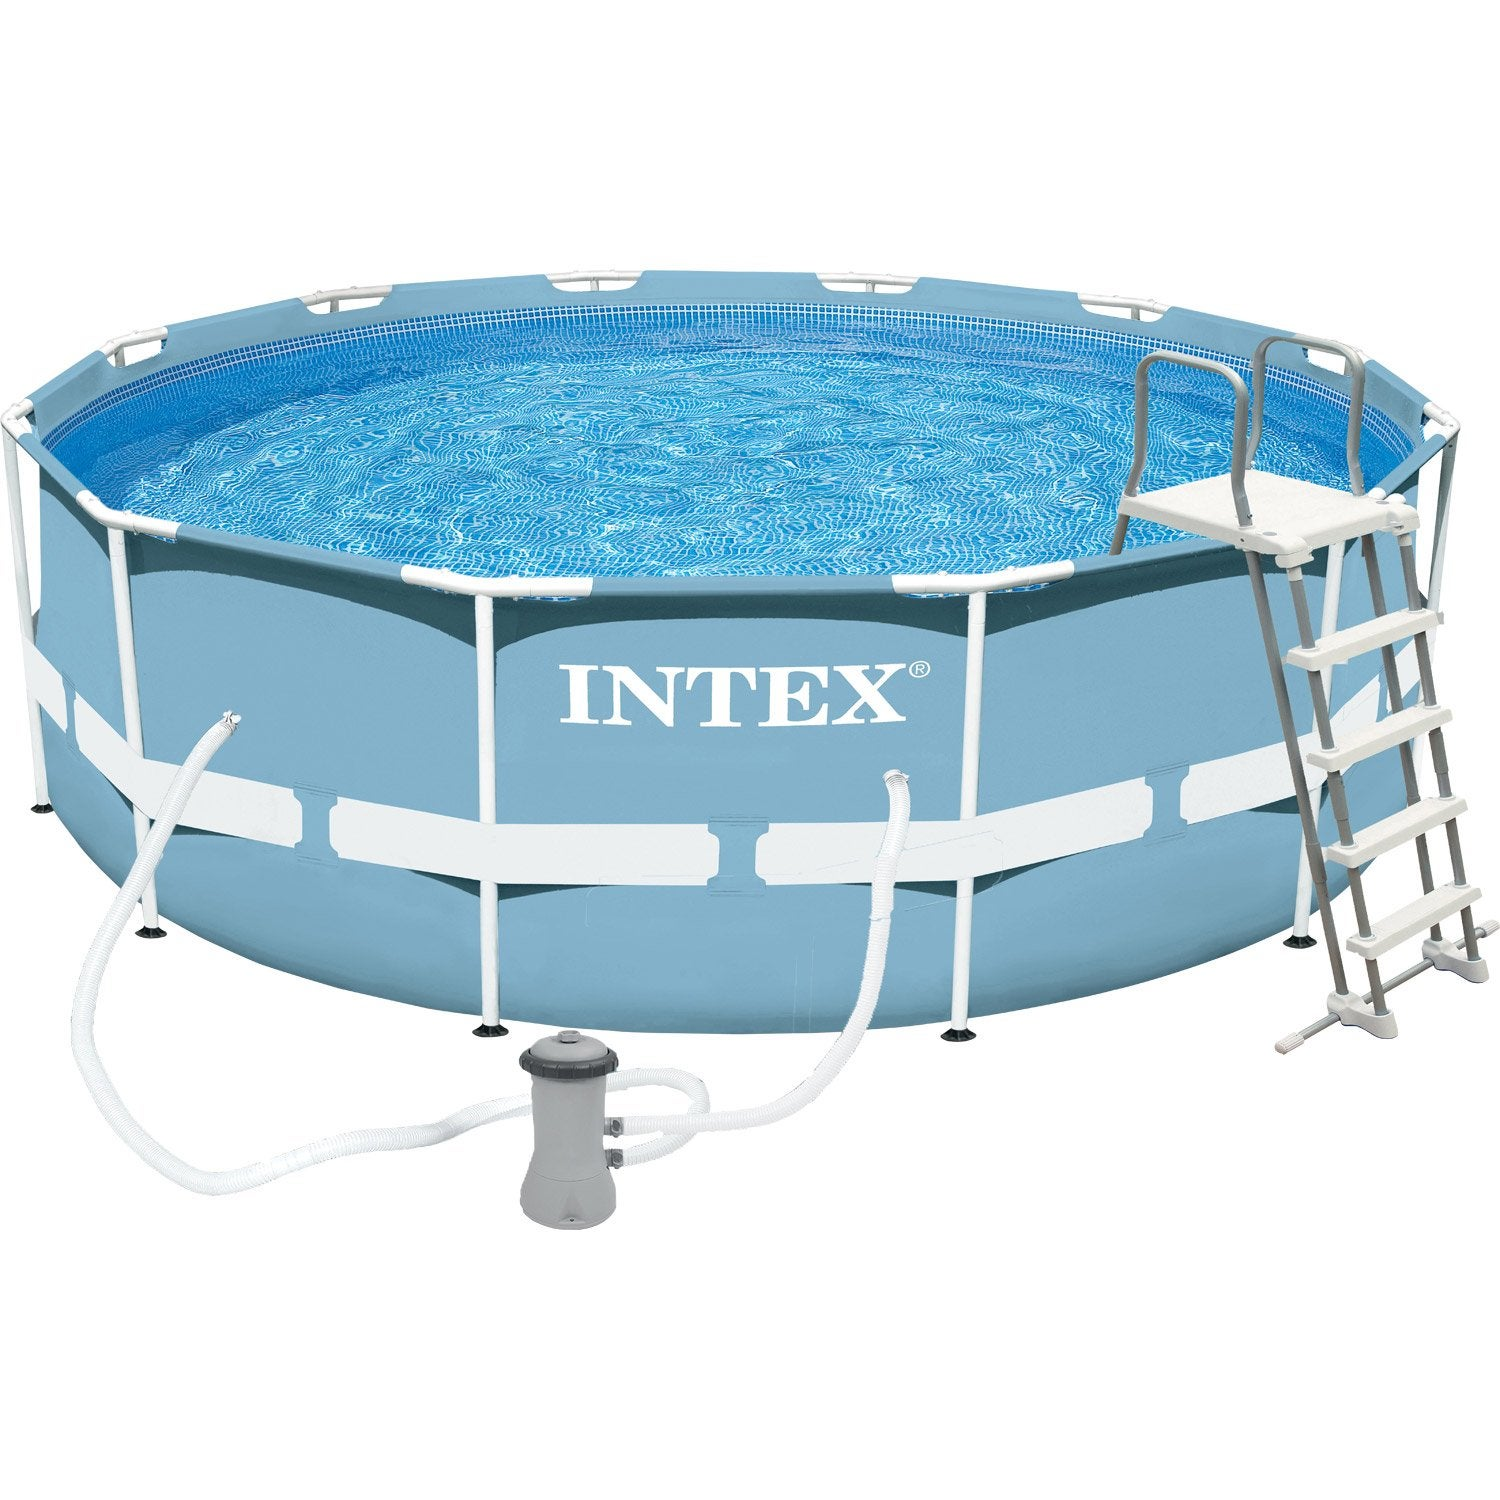 Piscine hors sol autoportante tubulaire prism frame intex for Solde piscine tubulaire intex